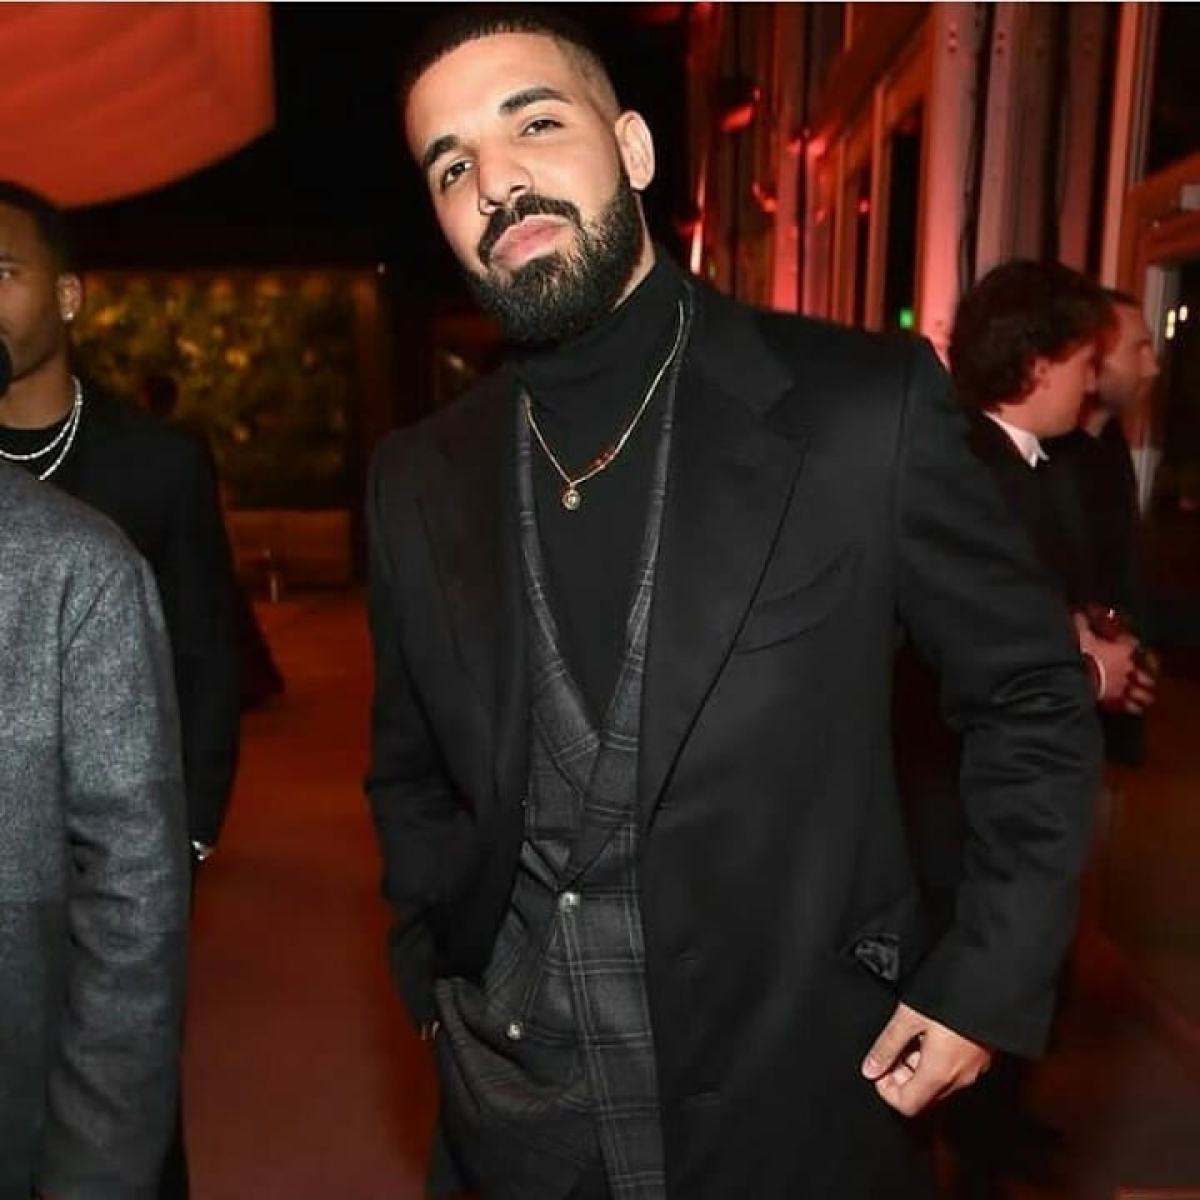 Woman armed with knife tries to get into rapper Drake's property in Canada